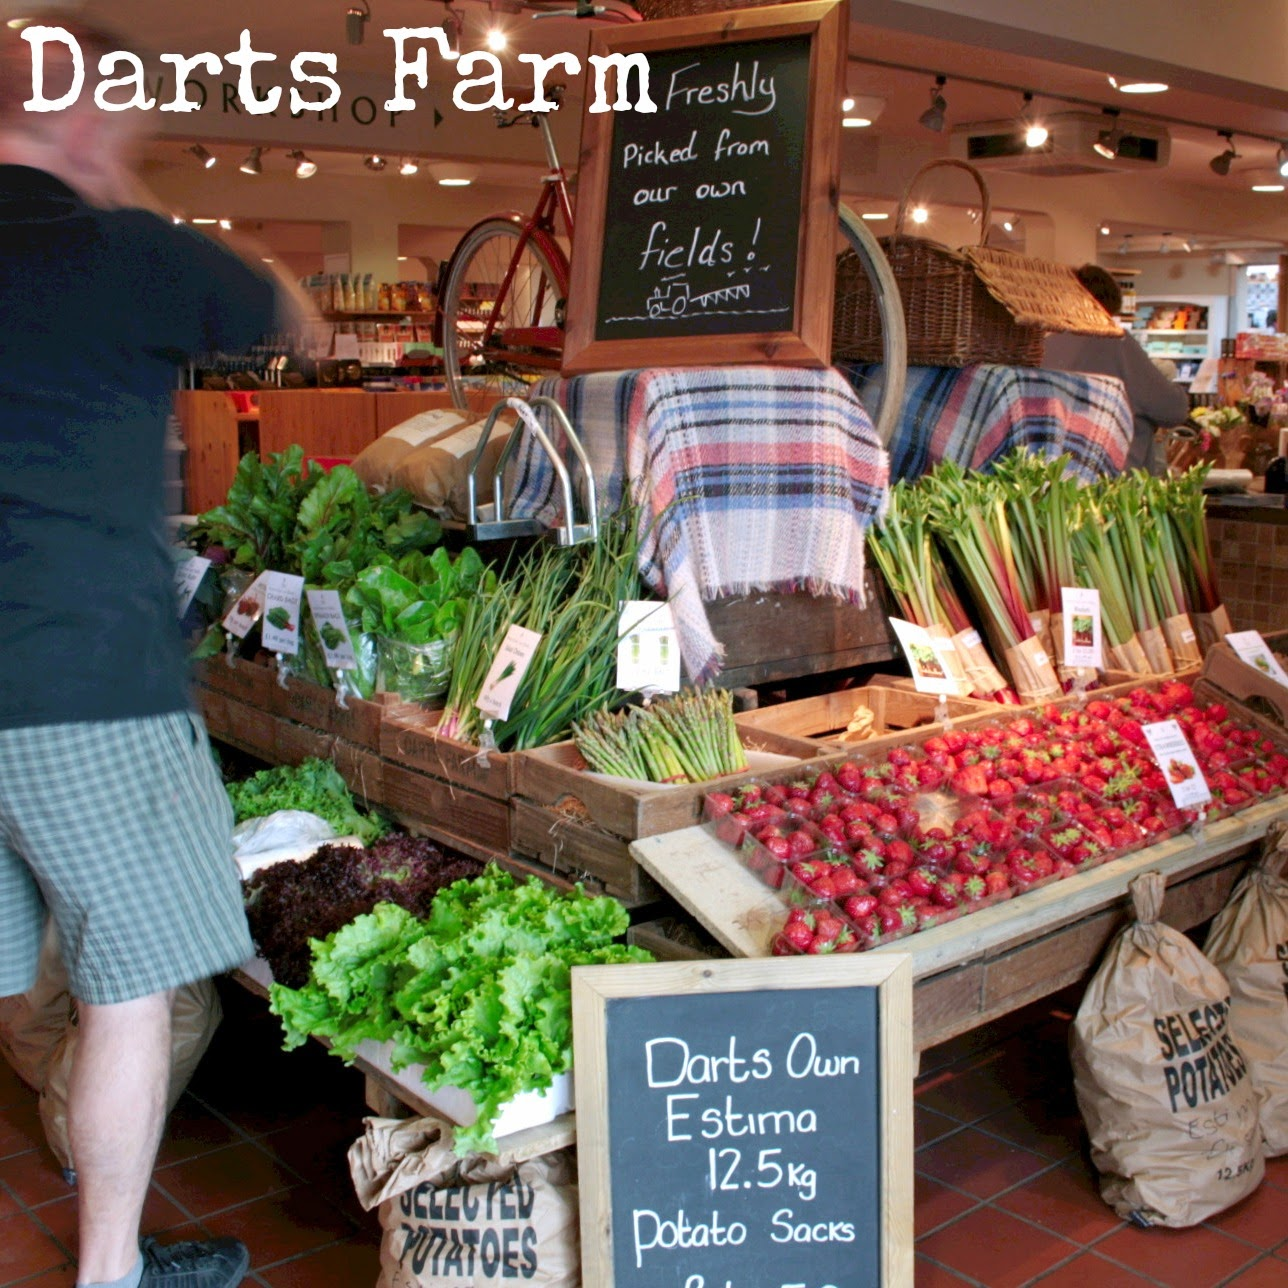 Another gem in the West Country - Darts Farm!  This is no ordinary farm shop with its extensive vegetable selection, pies and quiches, beautiful fresh meat (beef, pork, poultry) and every type of chutney, relish, jam, marmalade, sauce or condiment you could ever want - a lot of it from local suppliers here in Devon!